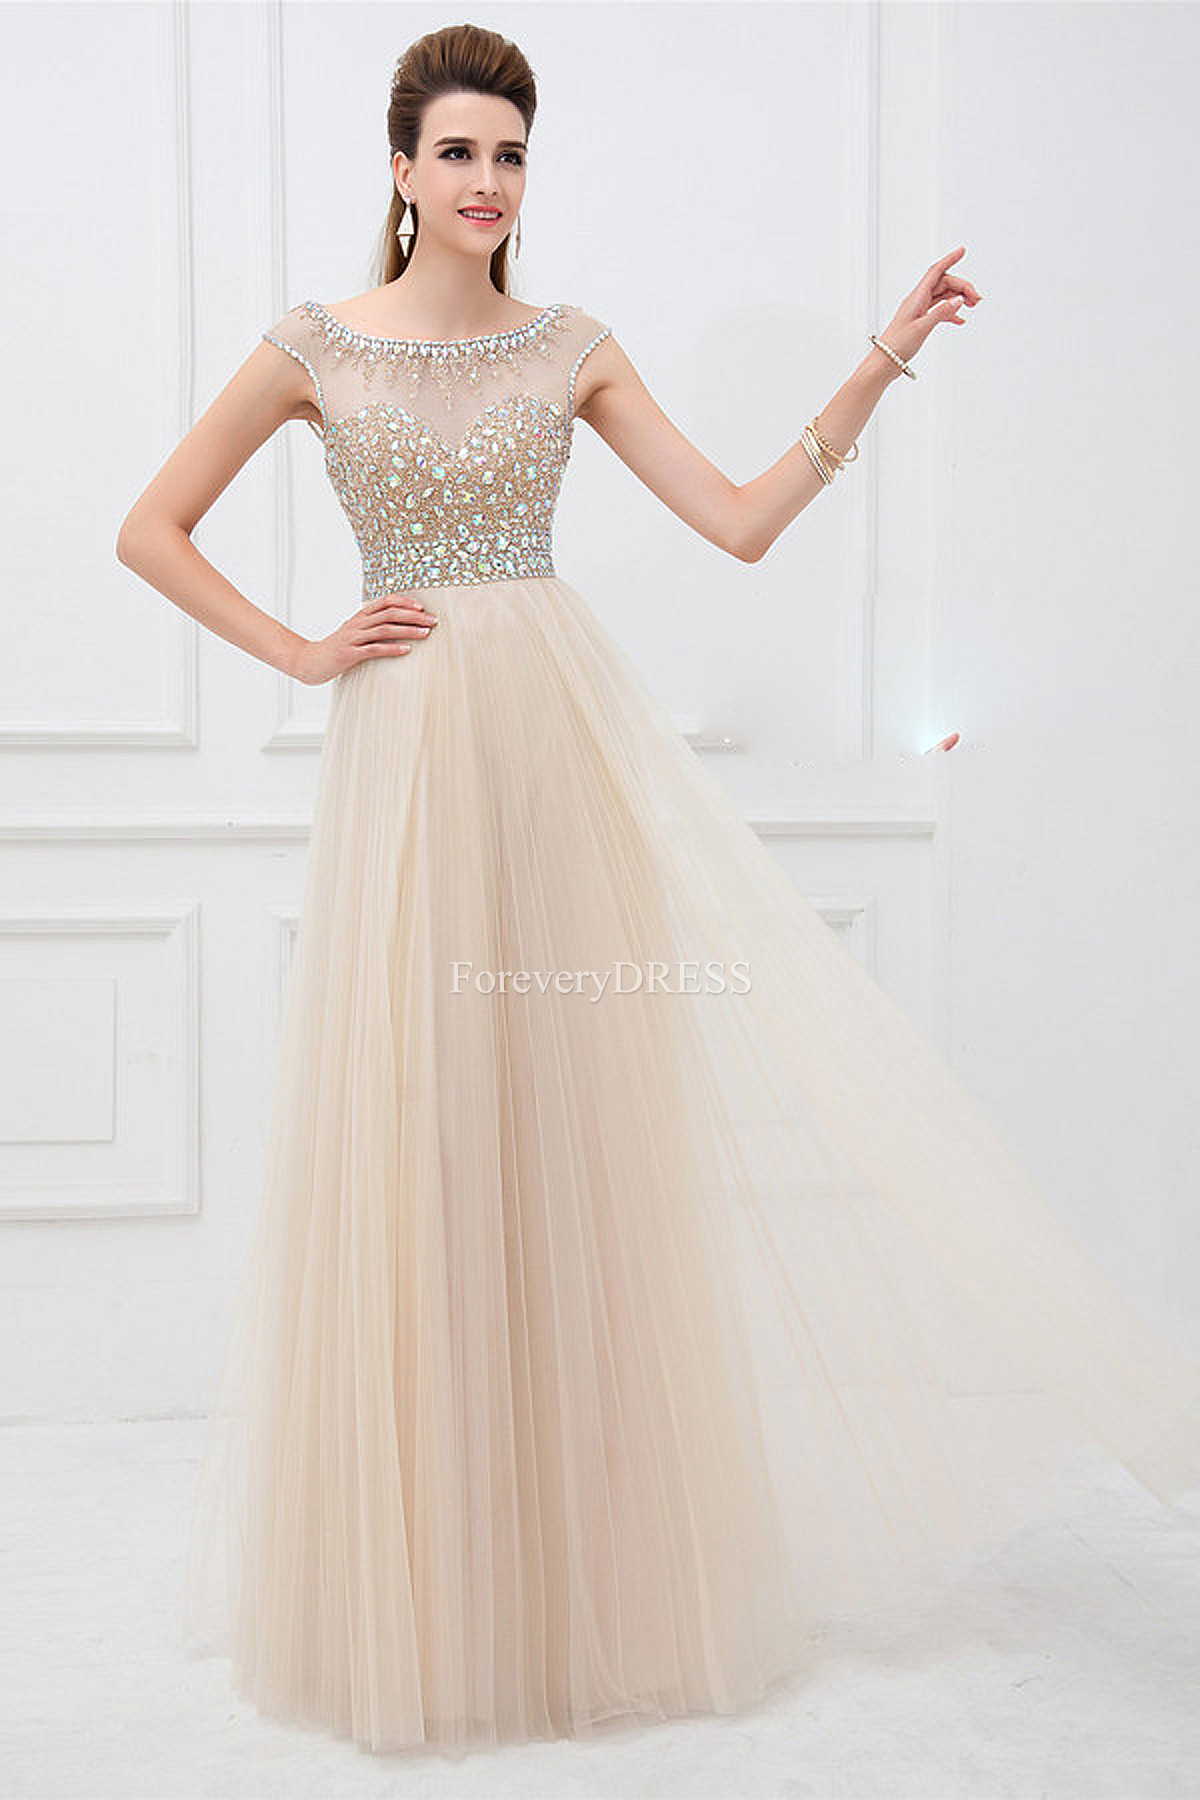 Party Dresses From Uk Eligent Prom Dresses